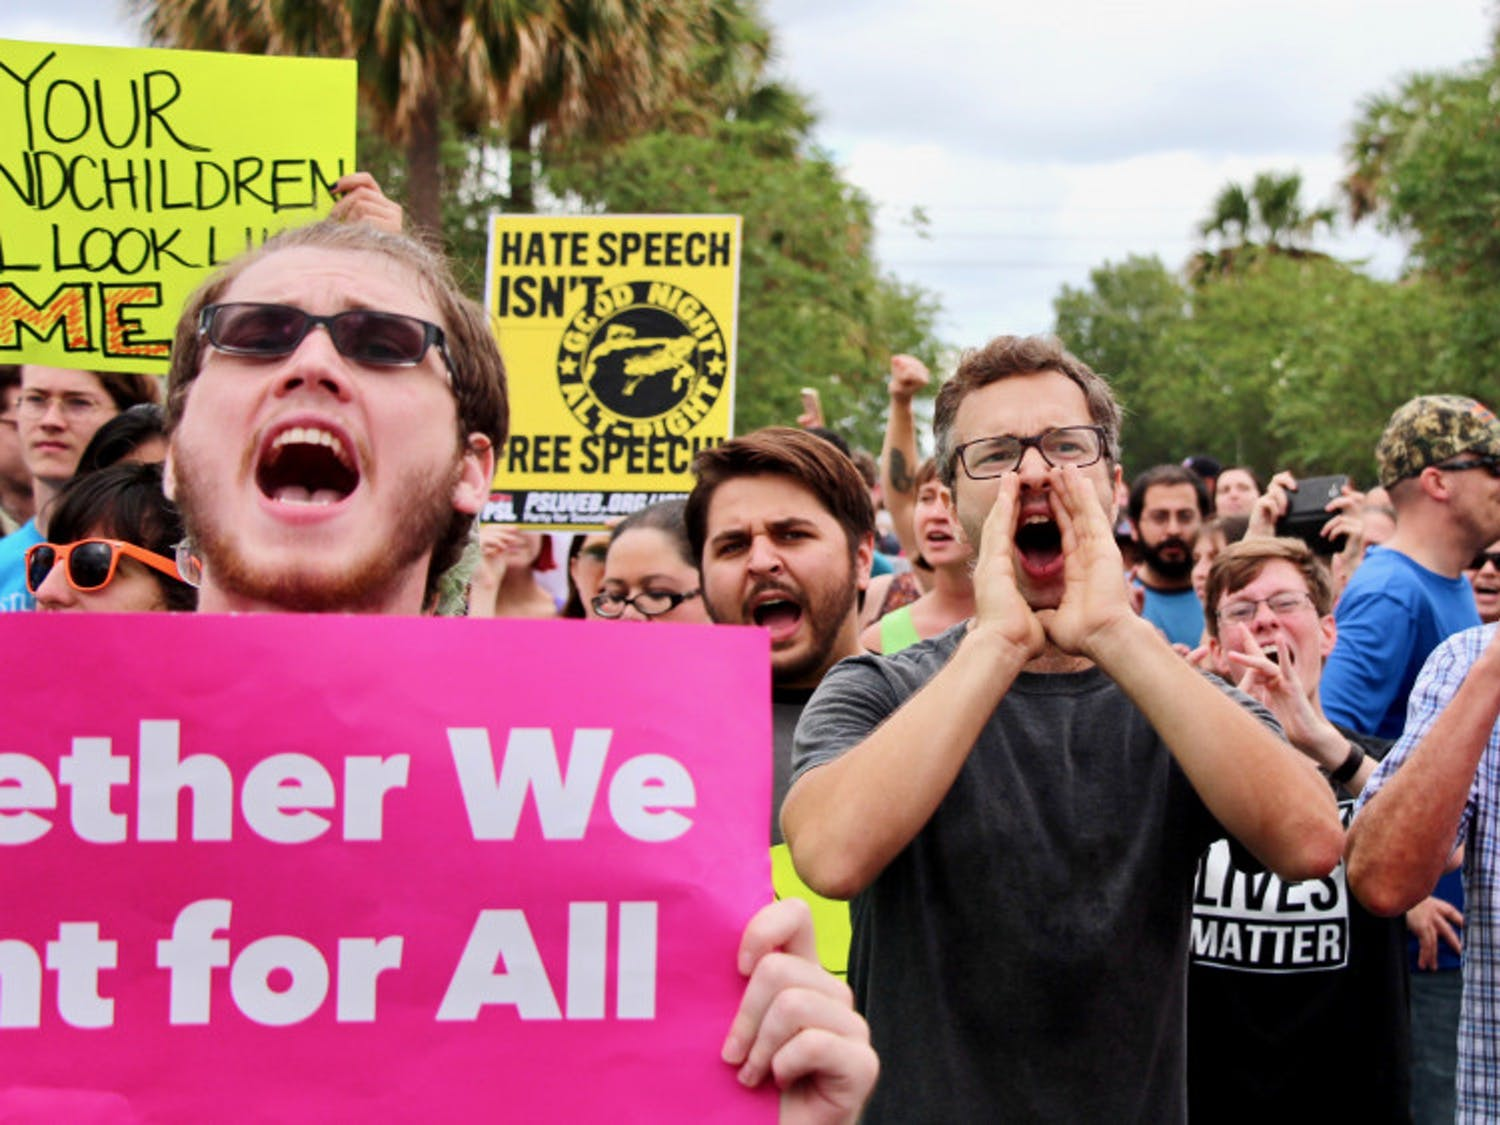 Hundreds of protesters gathered outside the Phillips Center for the Performing Arts to protest Richard Spencer's speech Thursday.